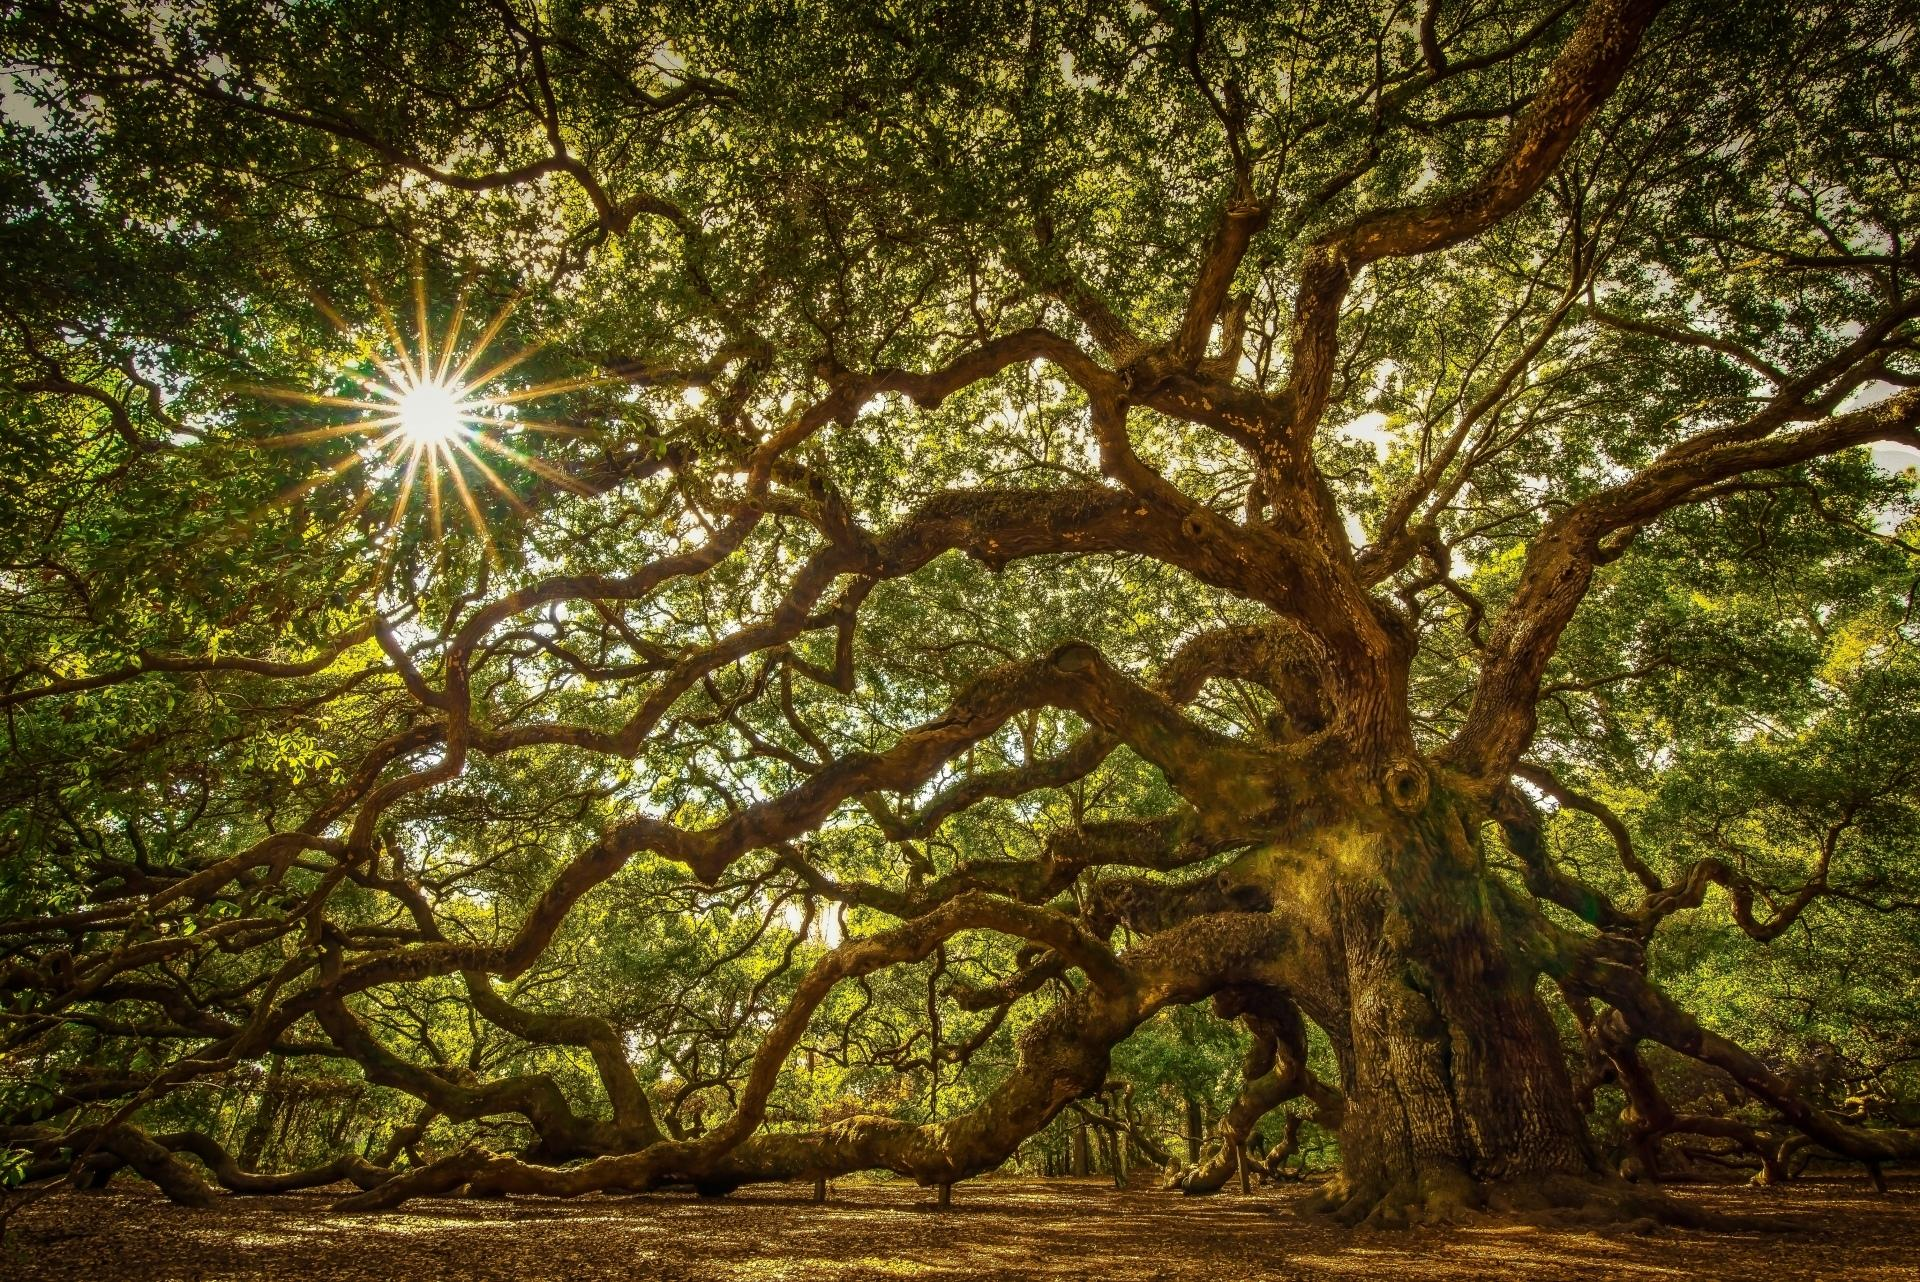 Angel Oak Tree Wallpapers HD Download 1920x1282